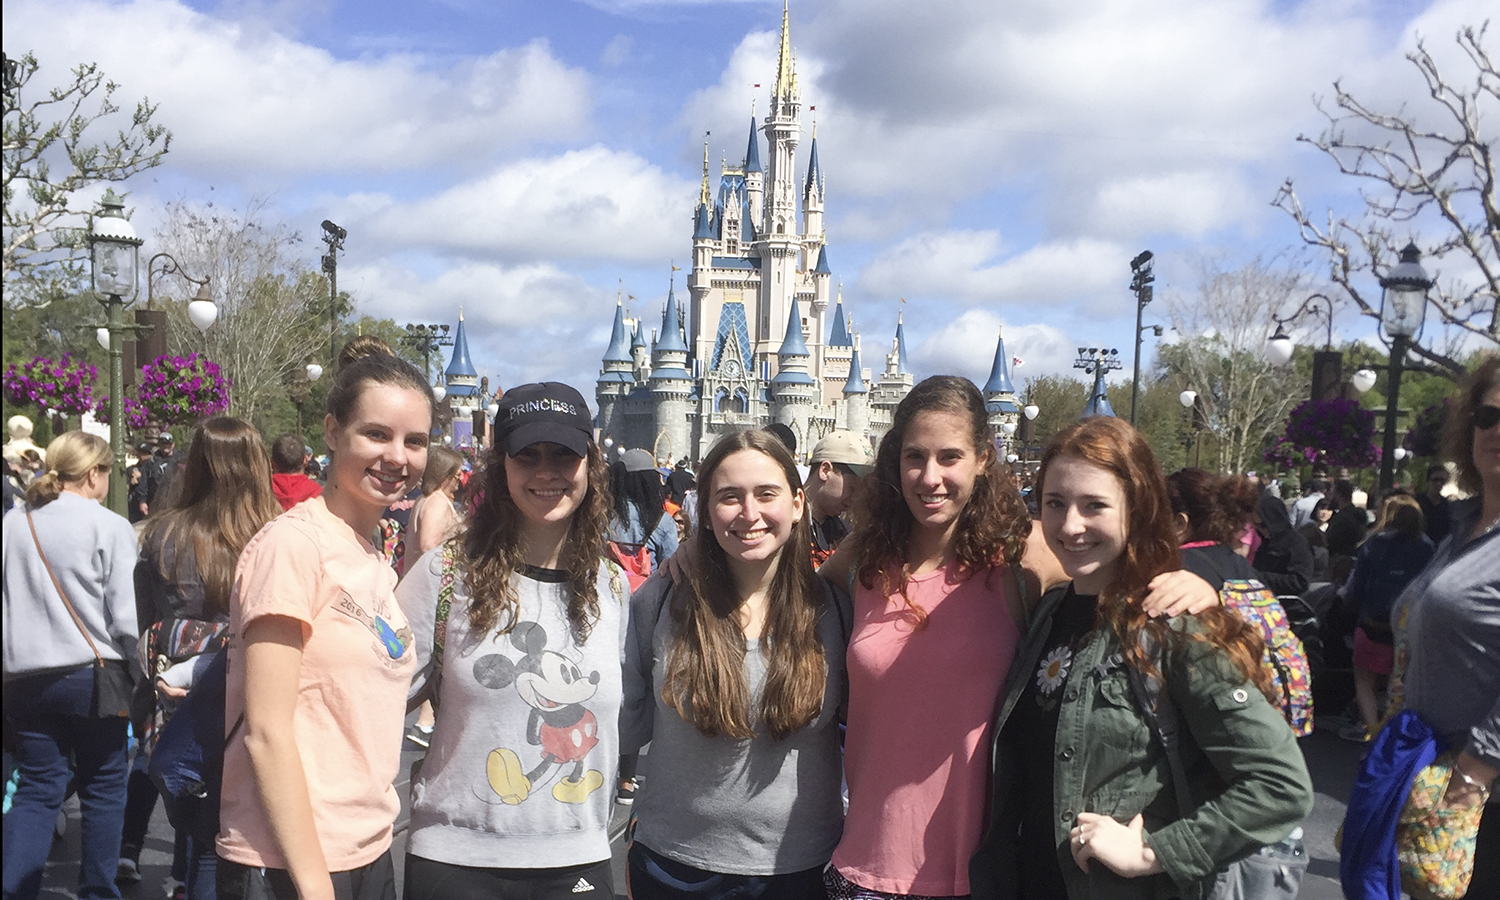 Lauren Mercier 'X(left), Taylor Mancini 'X, Mackenzie Tamblin 'X, Madisen Francis 'X and Mara Sindoni 'X gather for a group photo outside Magic Kingdom in Disney World.